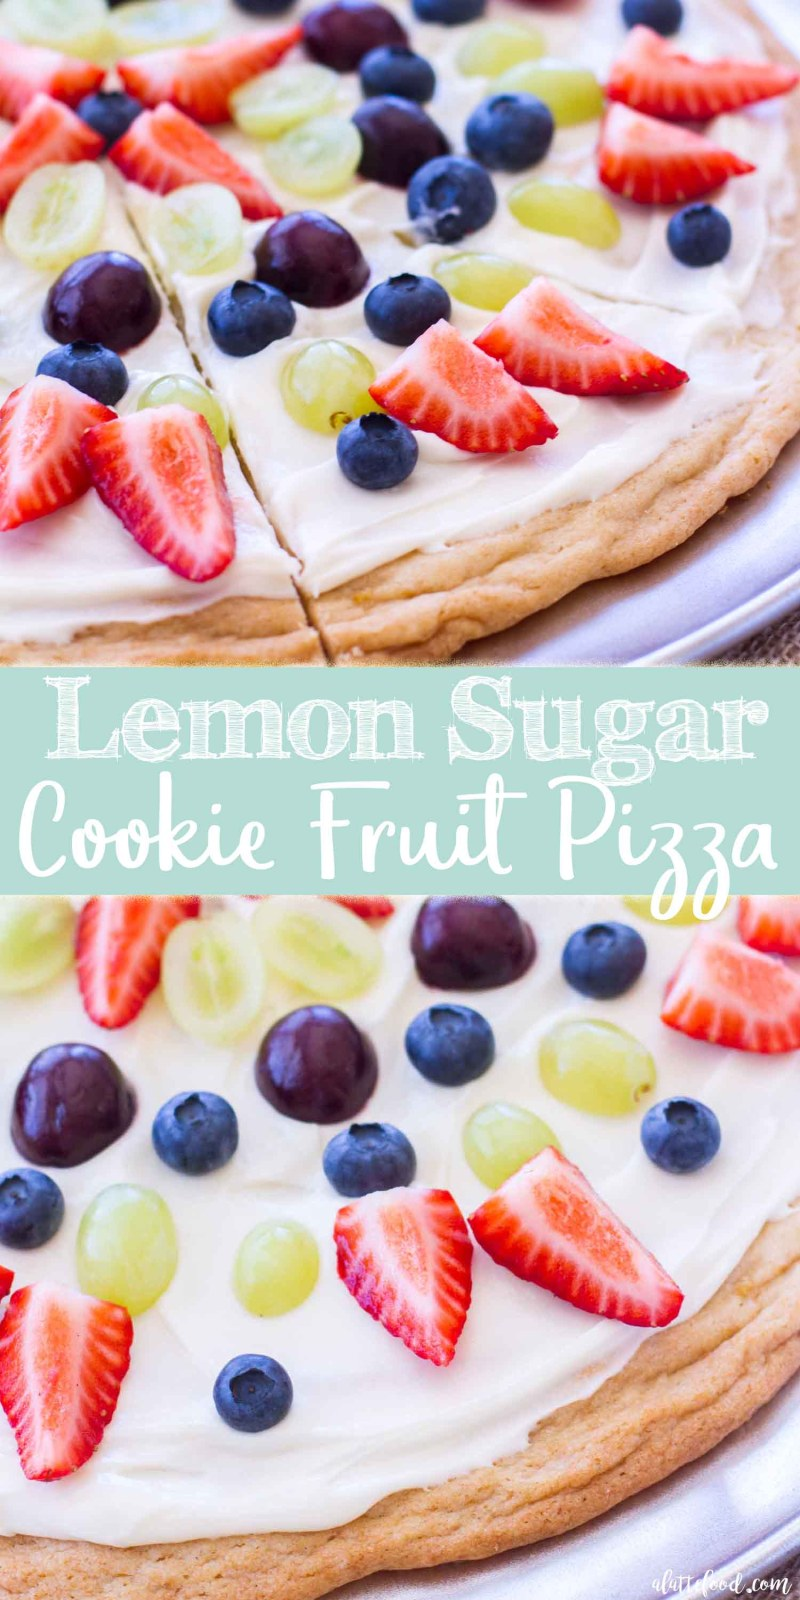 This easy Lemon Sugar Cookie Fruit Pizza recipe is made with a sugar cookie mix (although you could easily make it with homemade sugar cookie dough), topped with a creamy marshmallow frosting, and layered with fresh fruit! This easy summer dessert pizza is a perfect dessert recipe for summer picnics, holidays, and parties!  easy sugar cookie pizza, dessert pizza recipe